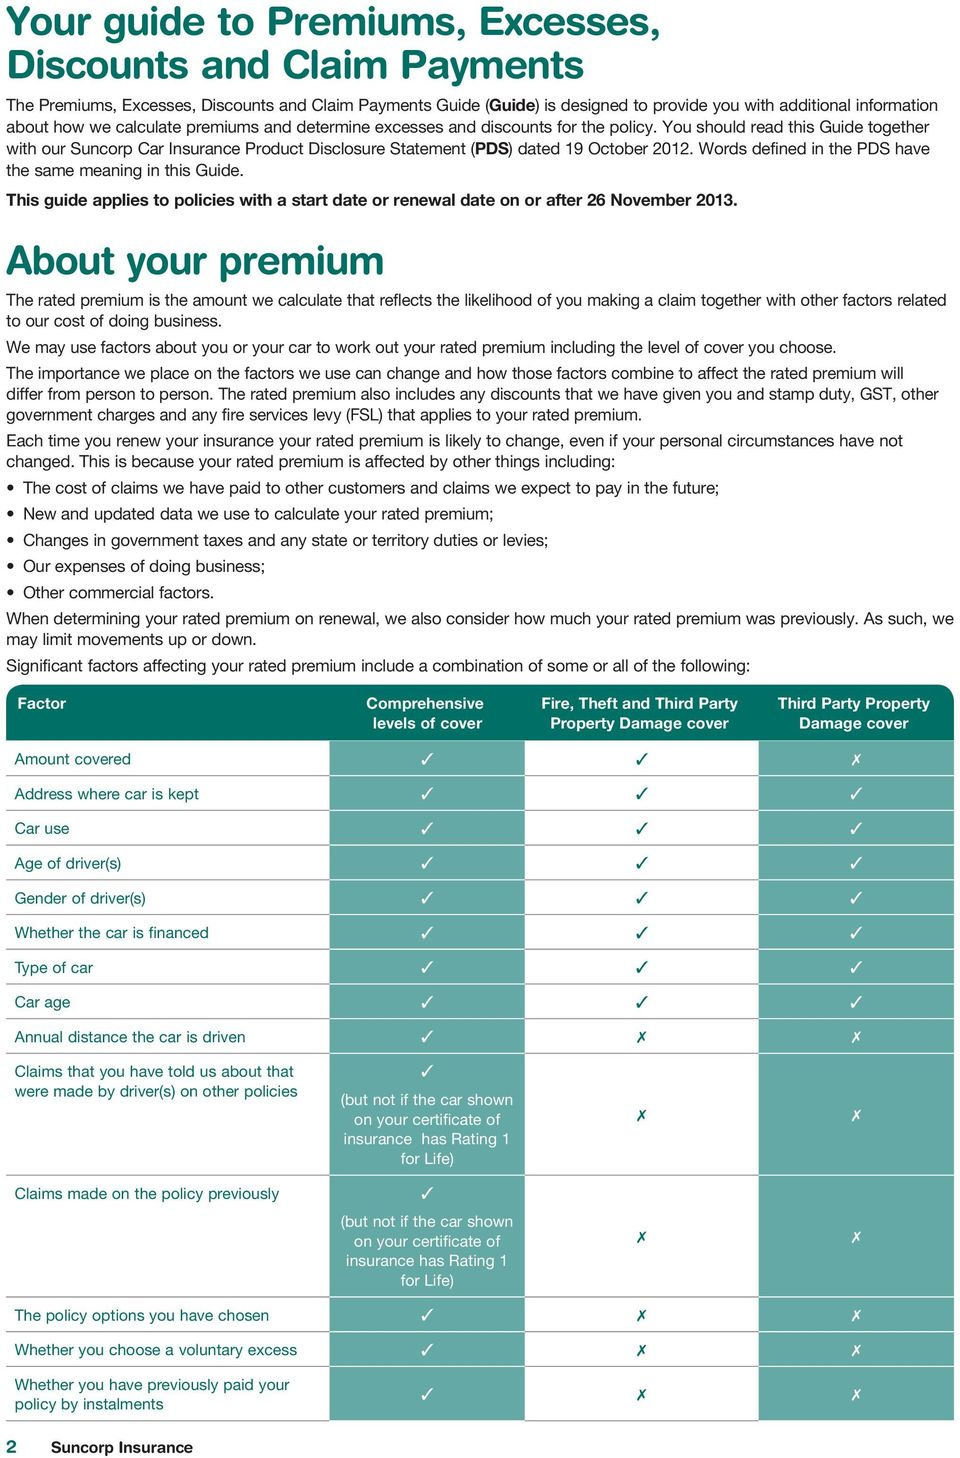 Words defined in the PDS have the same meaning in this Guide. This guide applies to policies with a start date or renewal date on or after 26 November 2013.